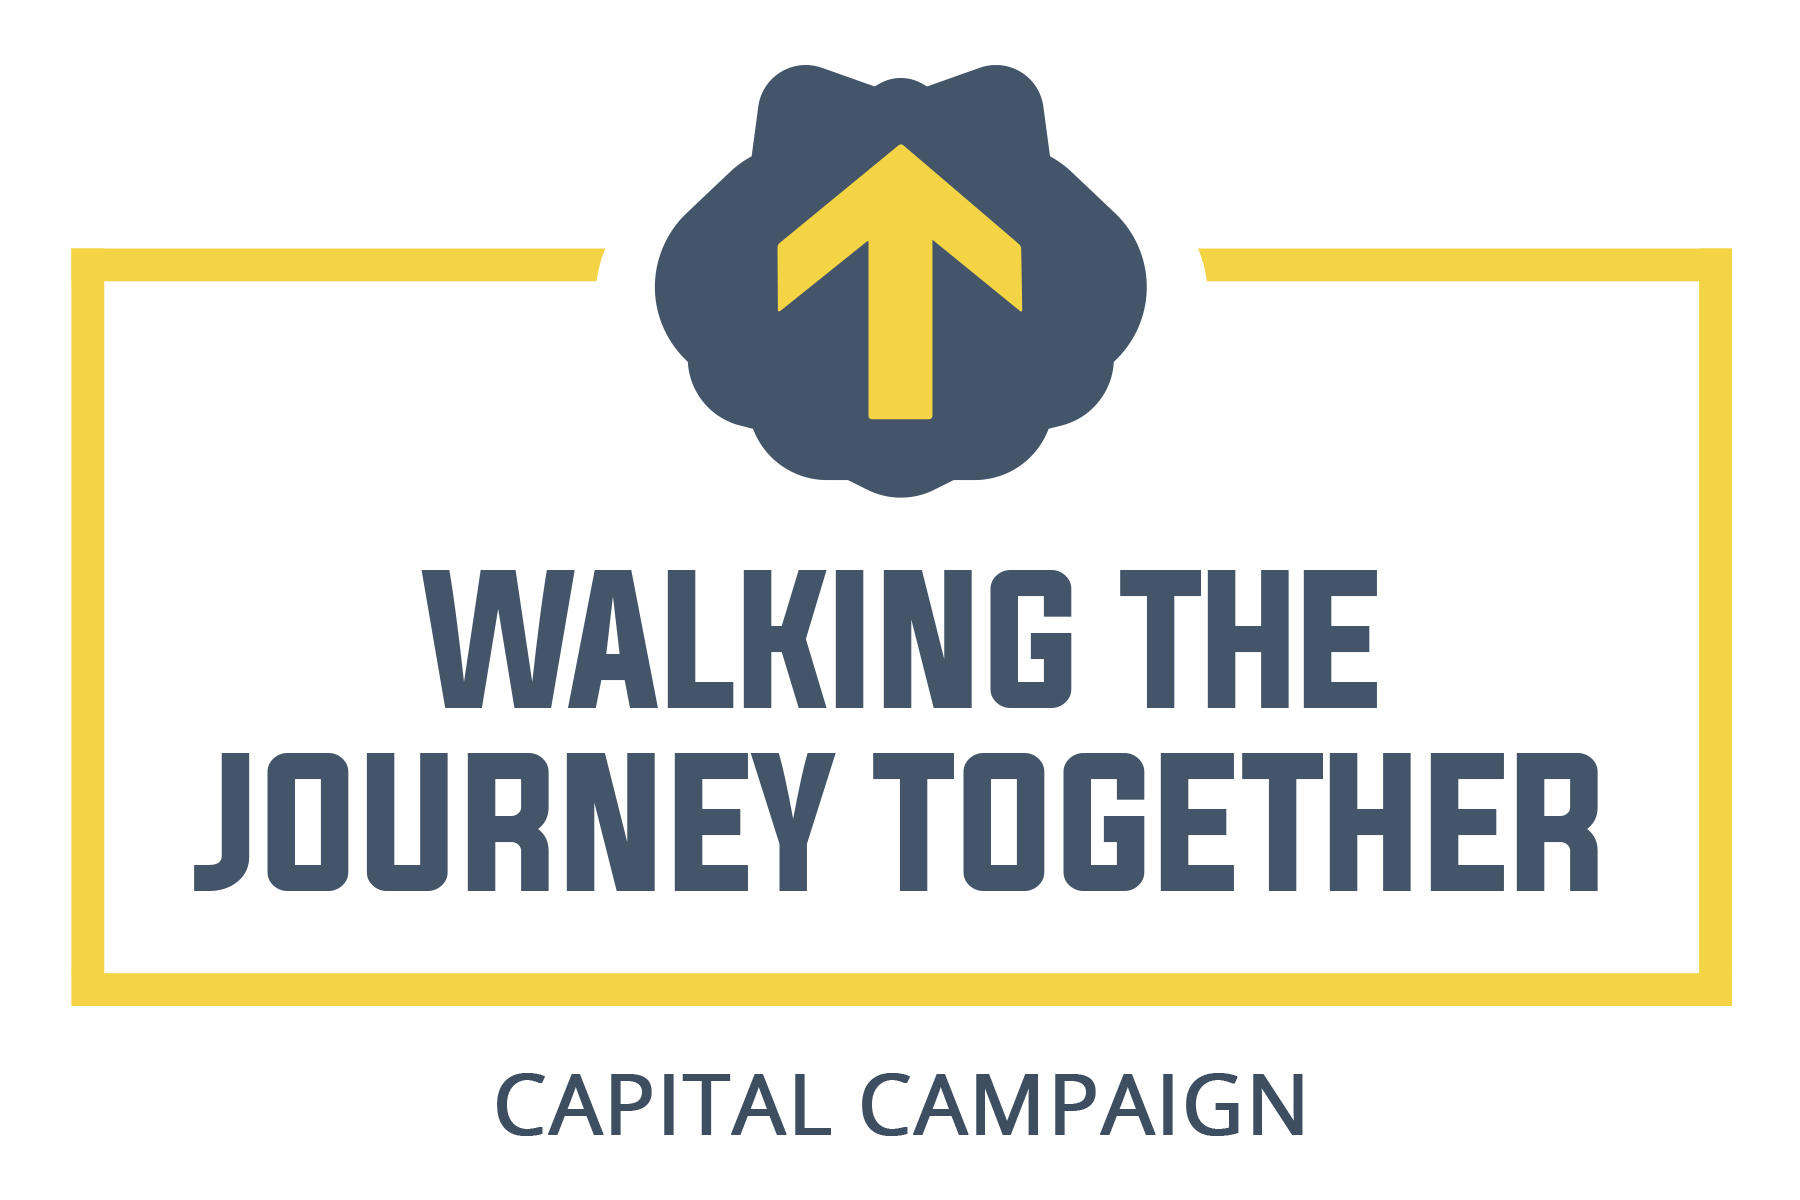 Friends of the Anglican Pilgrim Centre launch Capital Campaign